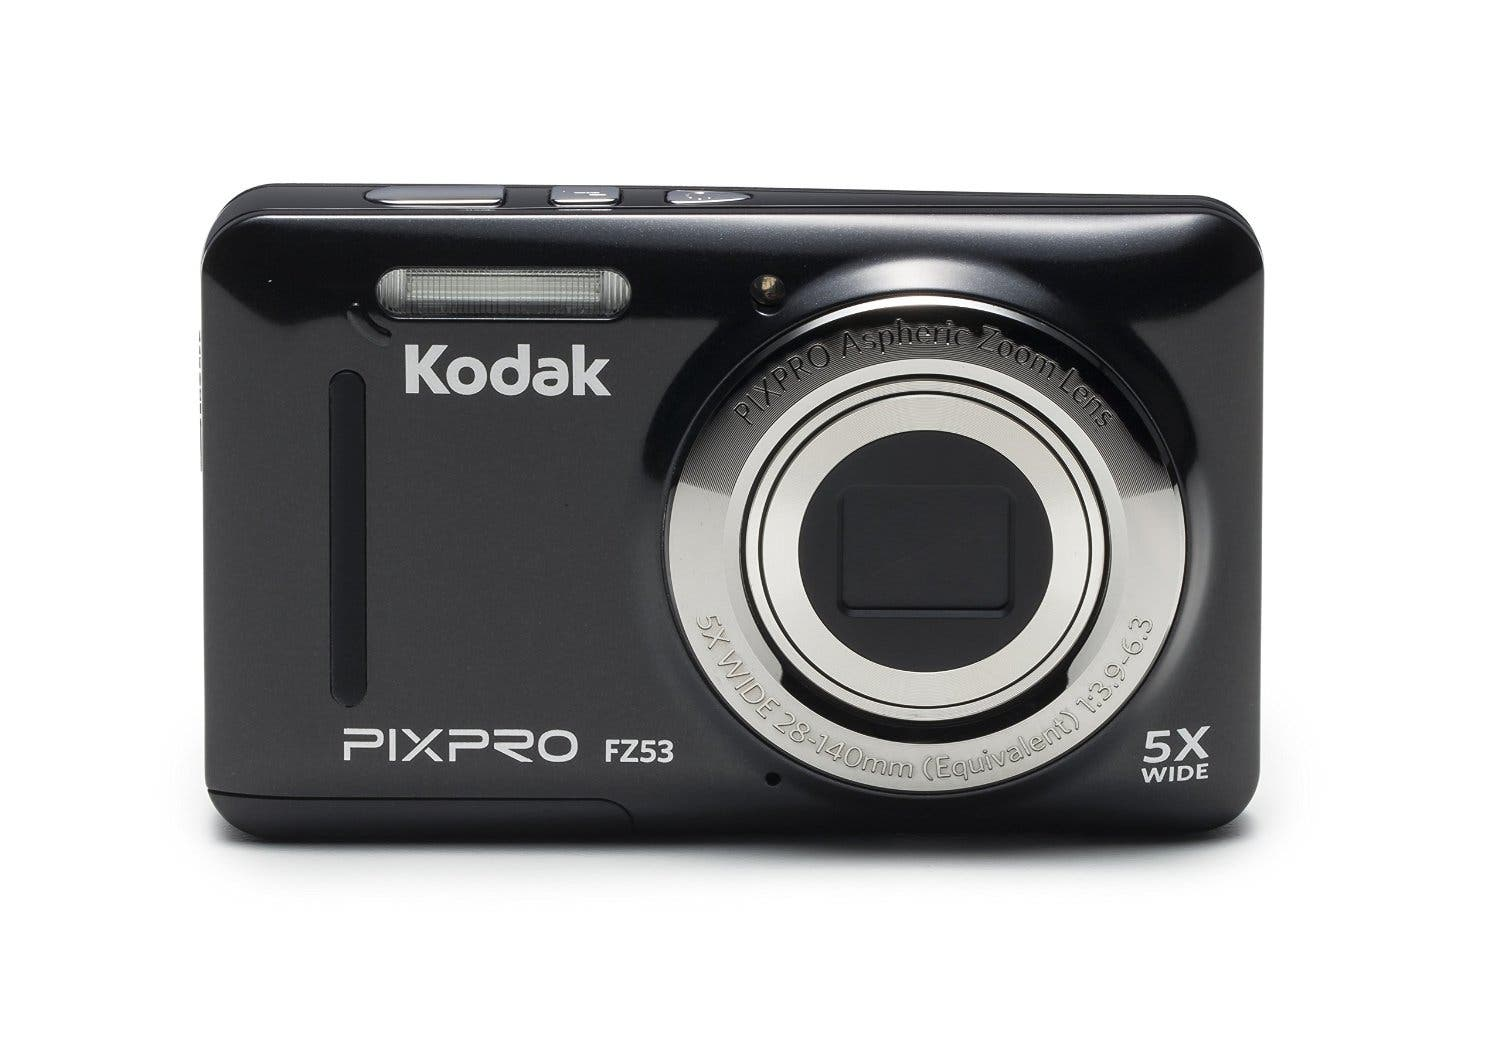 Kodak PIXPRO FZ53 16.2 Megapixel Compact Camera - Black|https://ak1.ostkcdn.com/images/products/174/359/P18757751.jpg?impolicy=medium